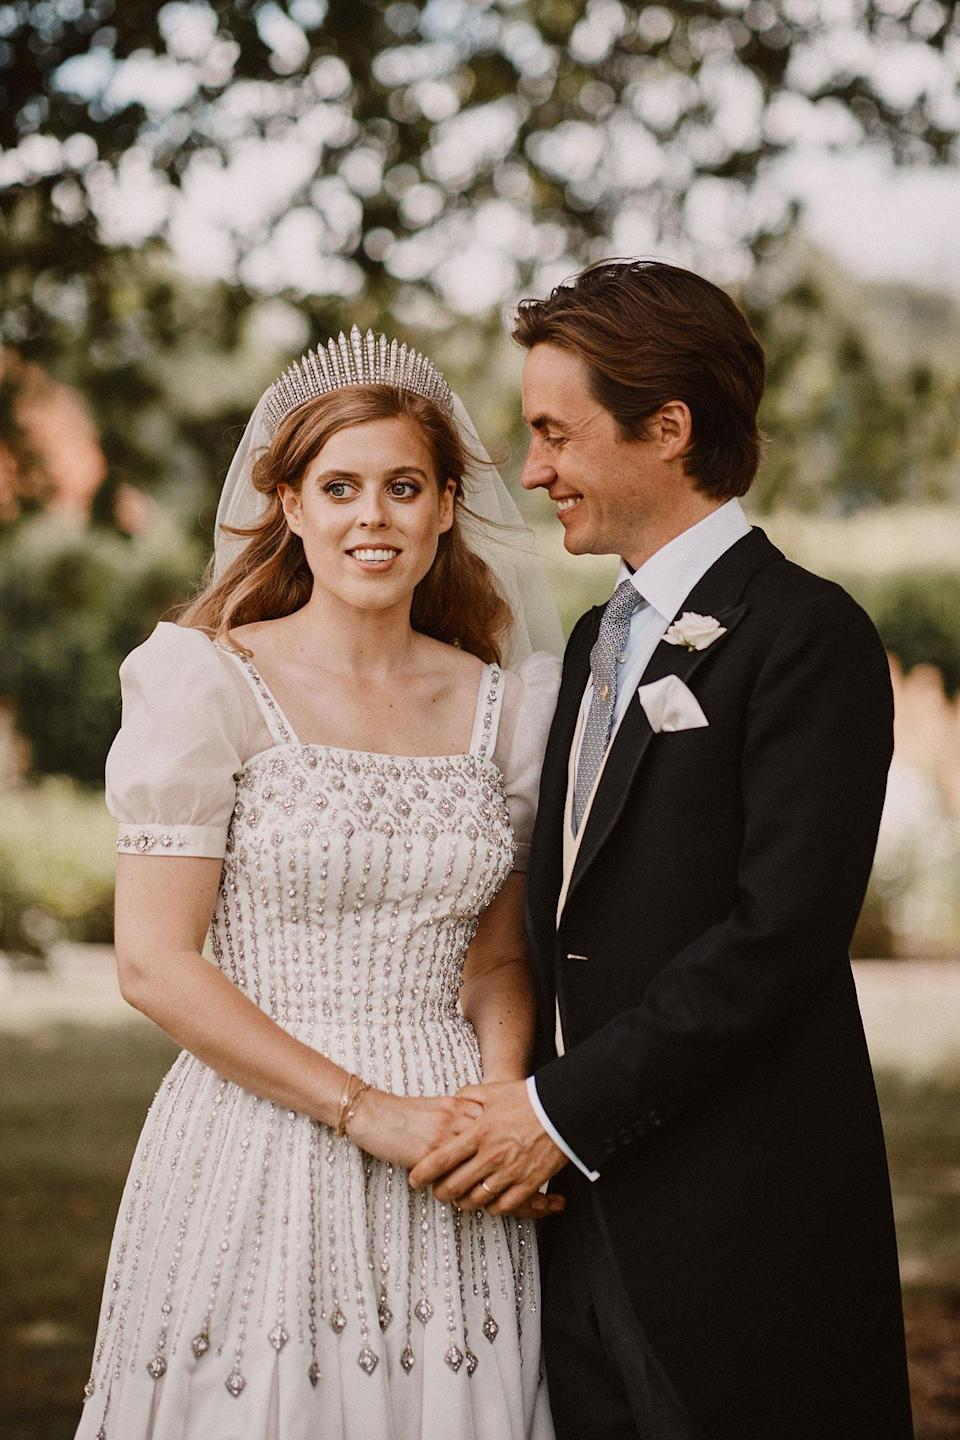 <p>Princess Beatrice wore a very special tiara for her wedding day in July 2020 — the same dazzling headpiece worn by her grandmother when she married Prince Philip in 1947.</p>